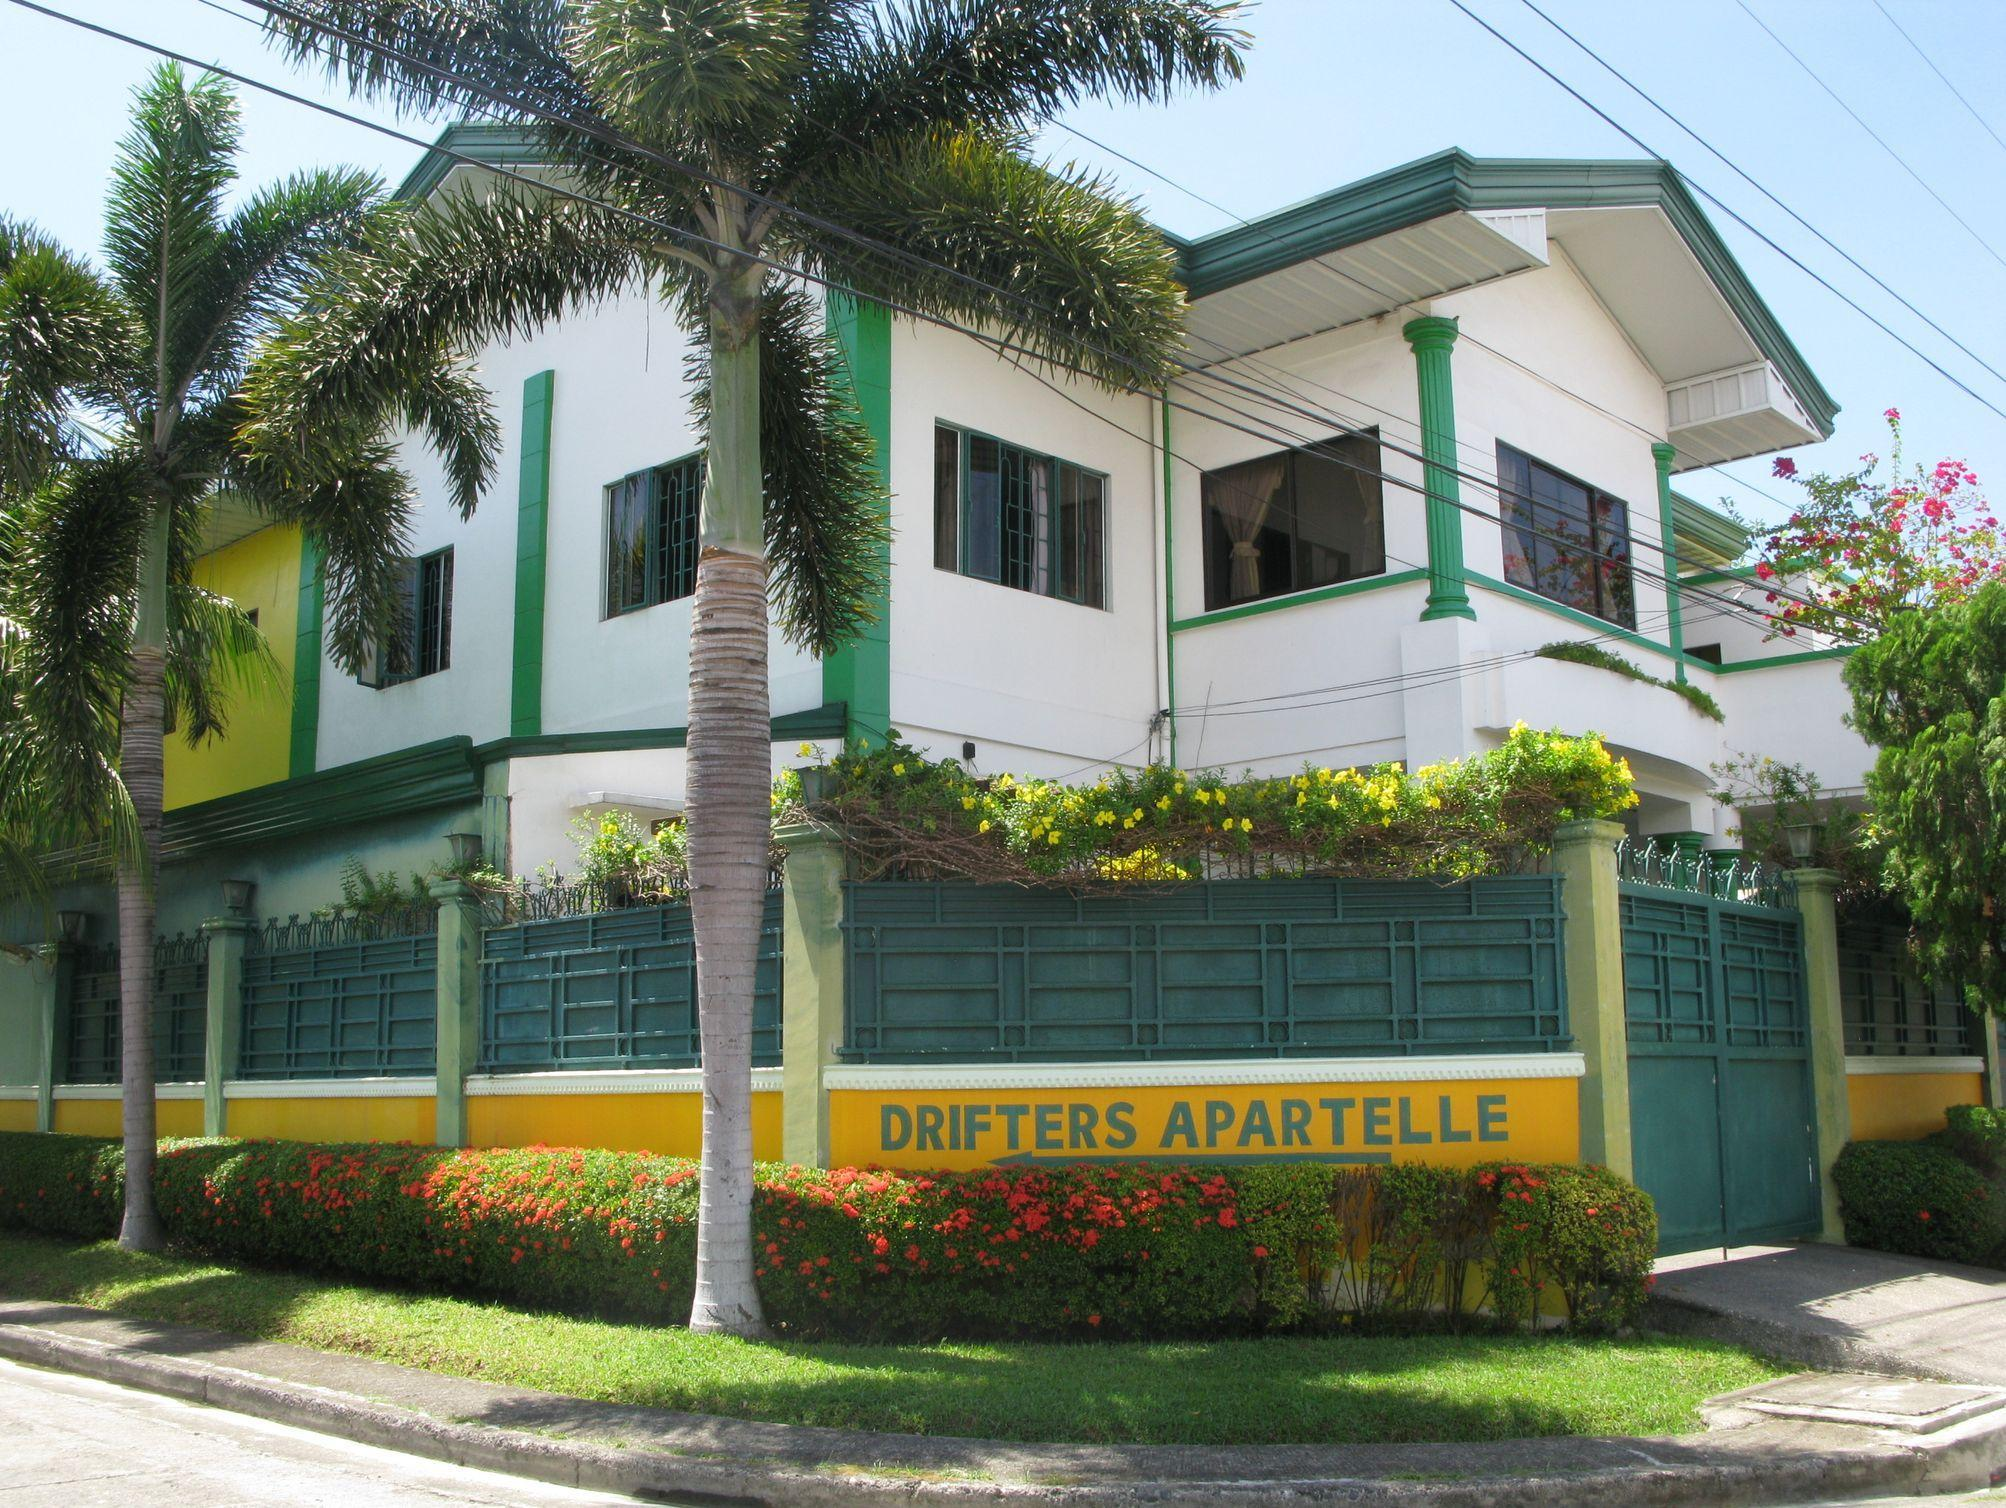 Drifters Guest House And Apartelle